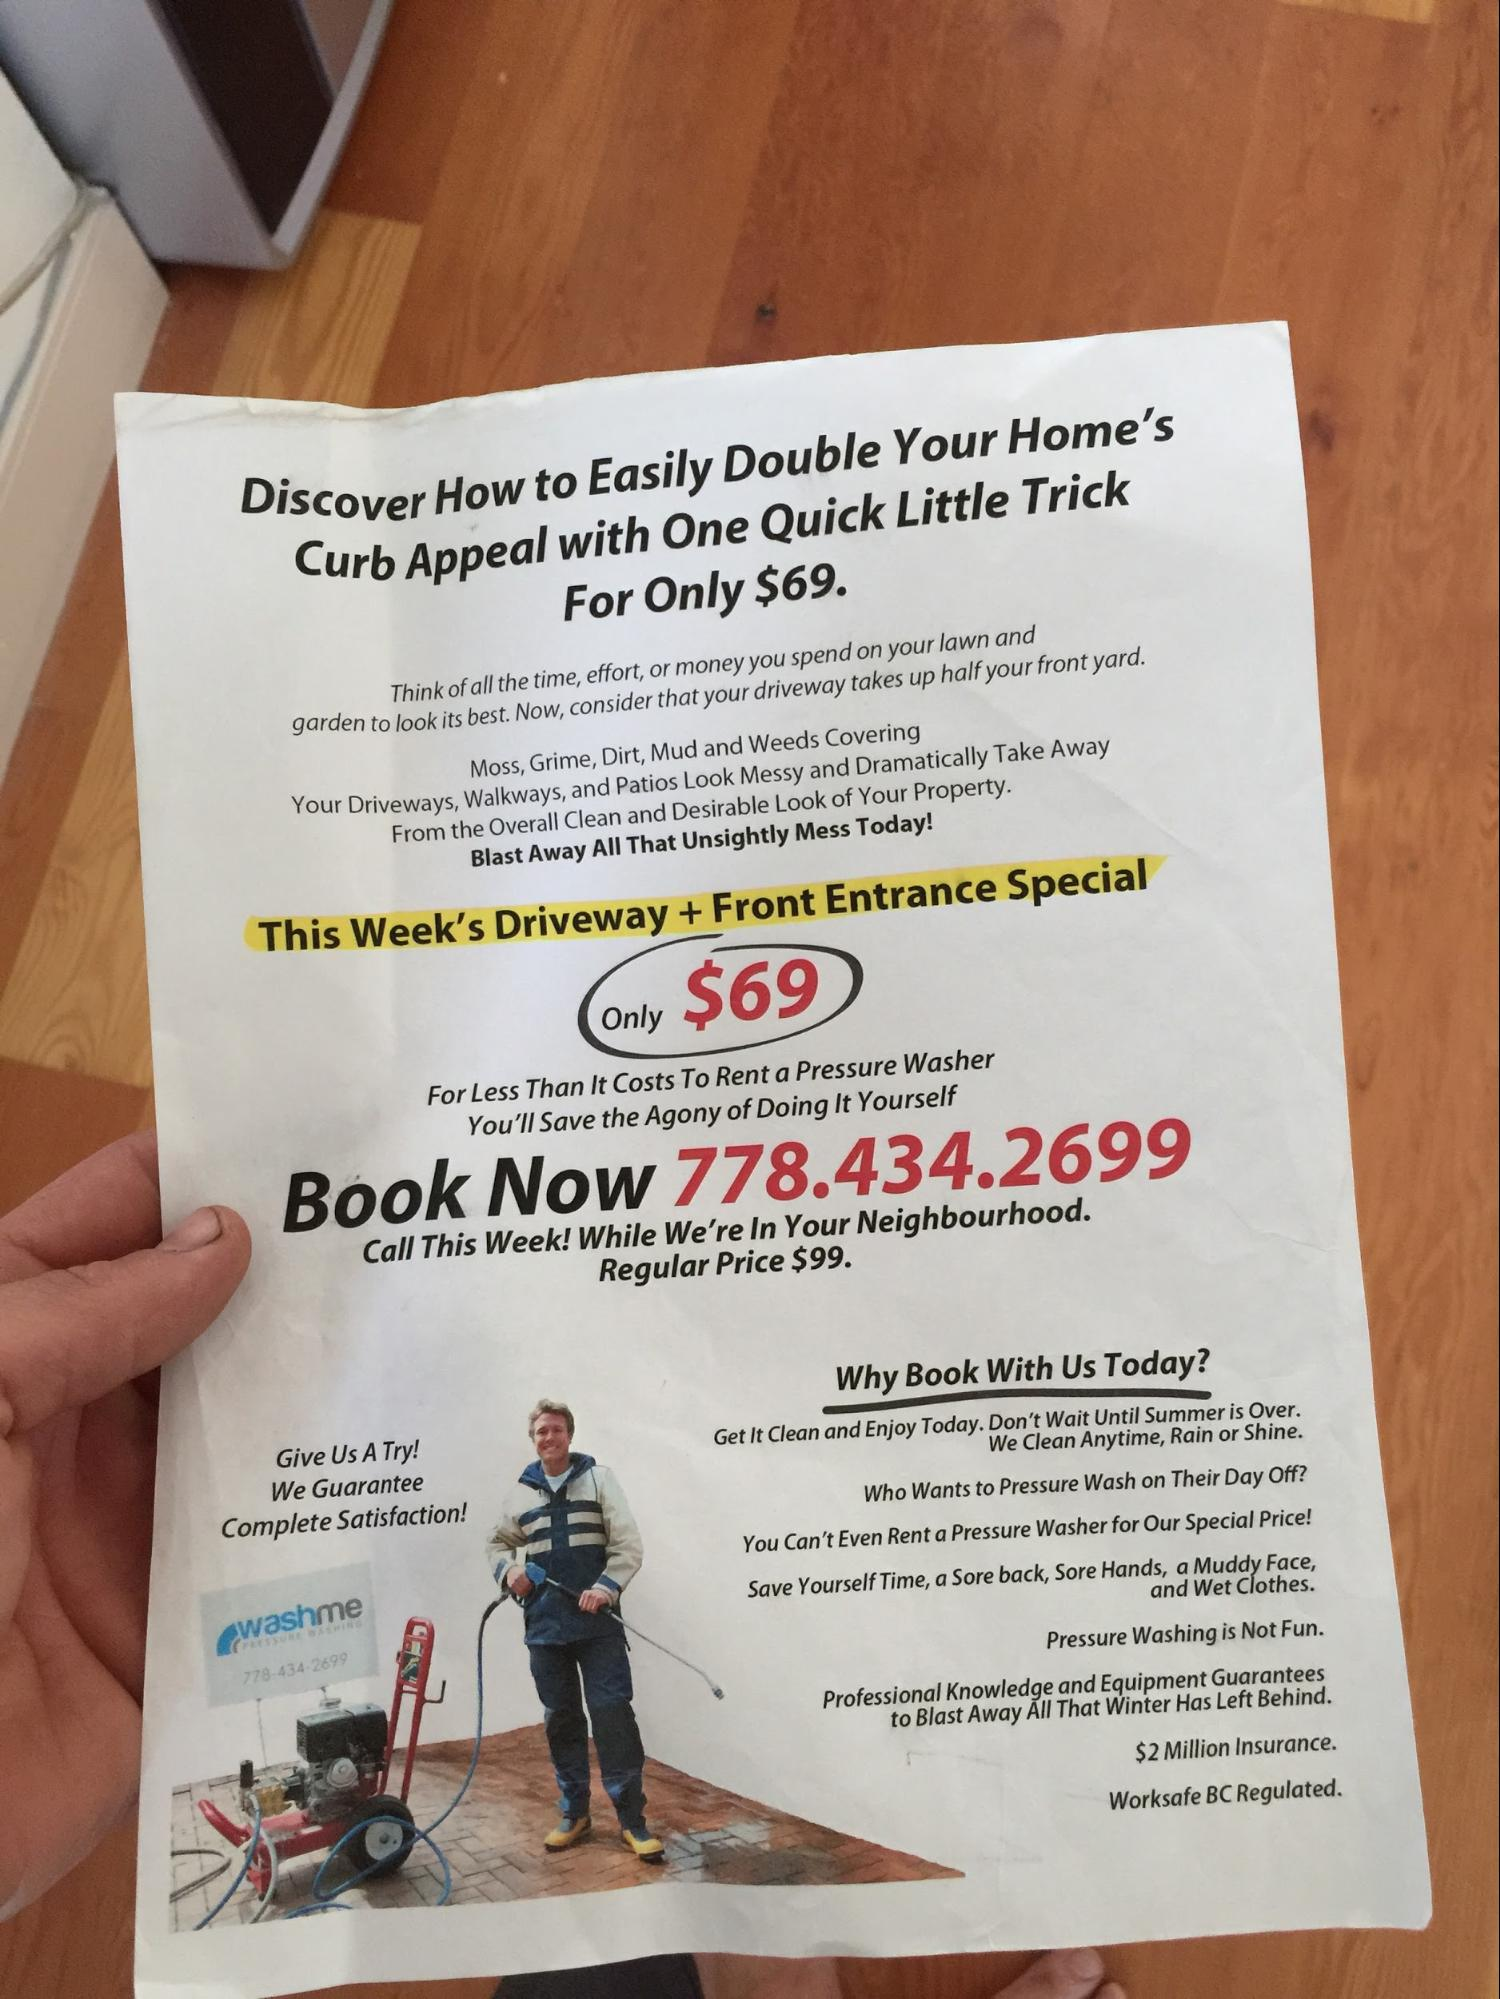 powerwashing flyers took business from <title> powerwashing the flyers that did really well look ugly but they seem personal genuine and offer a real benefit to the reader